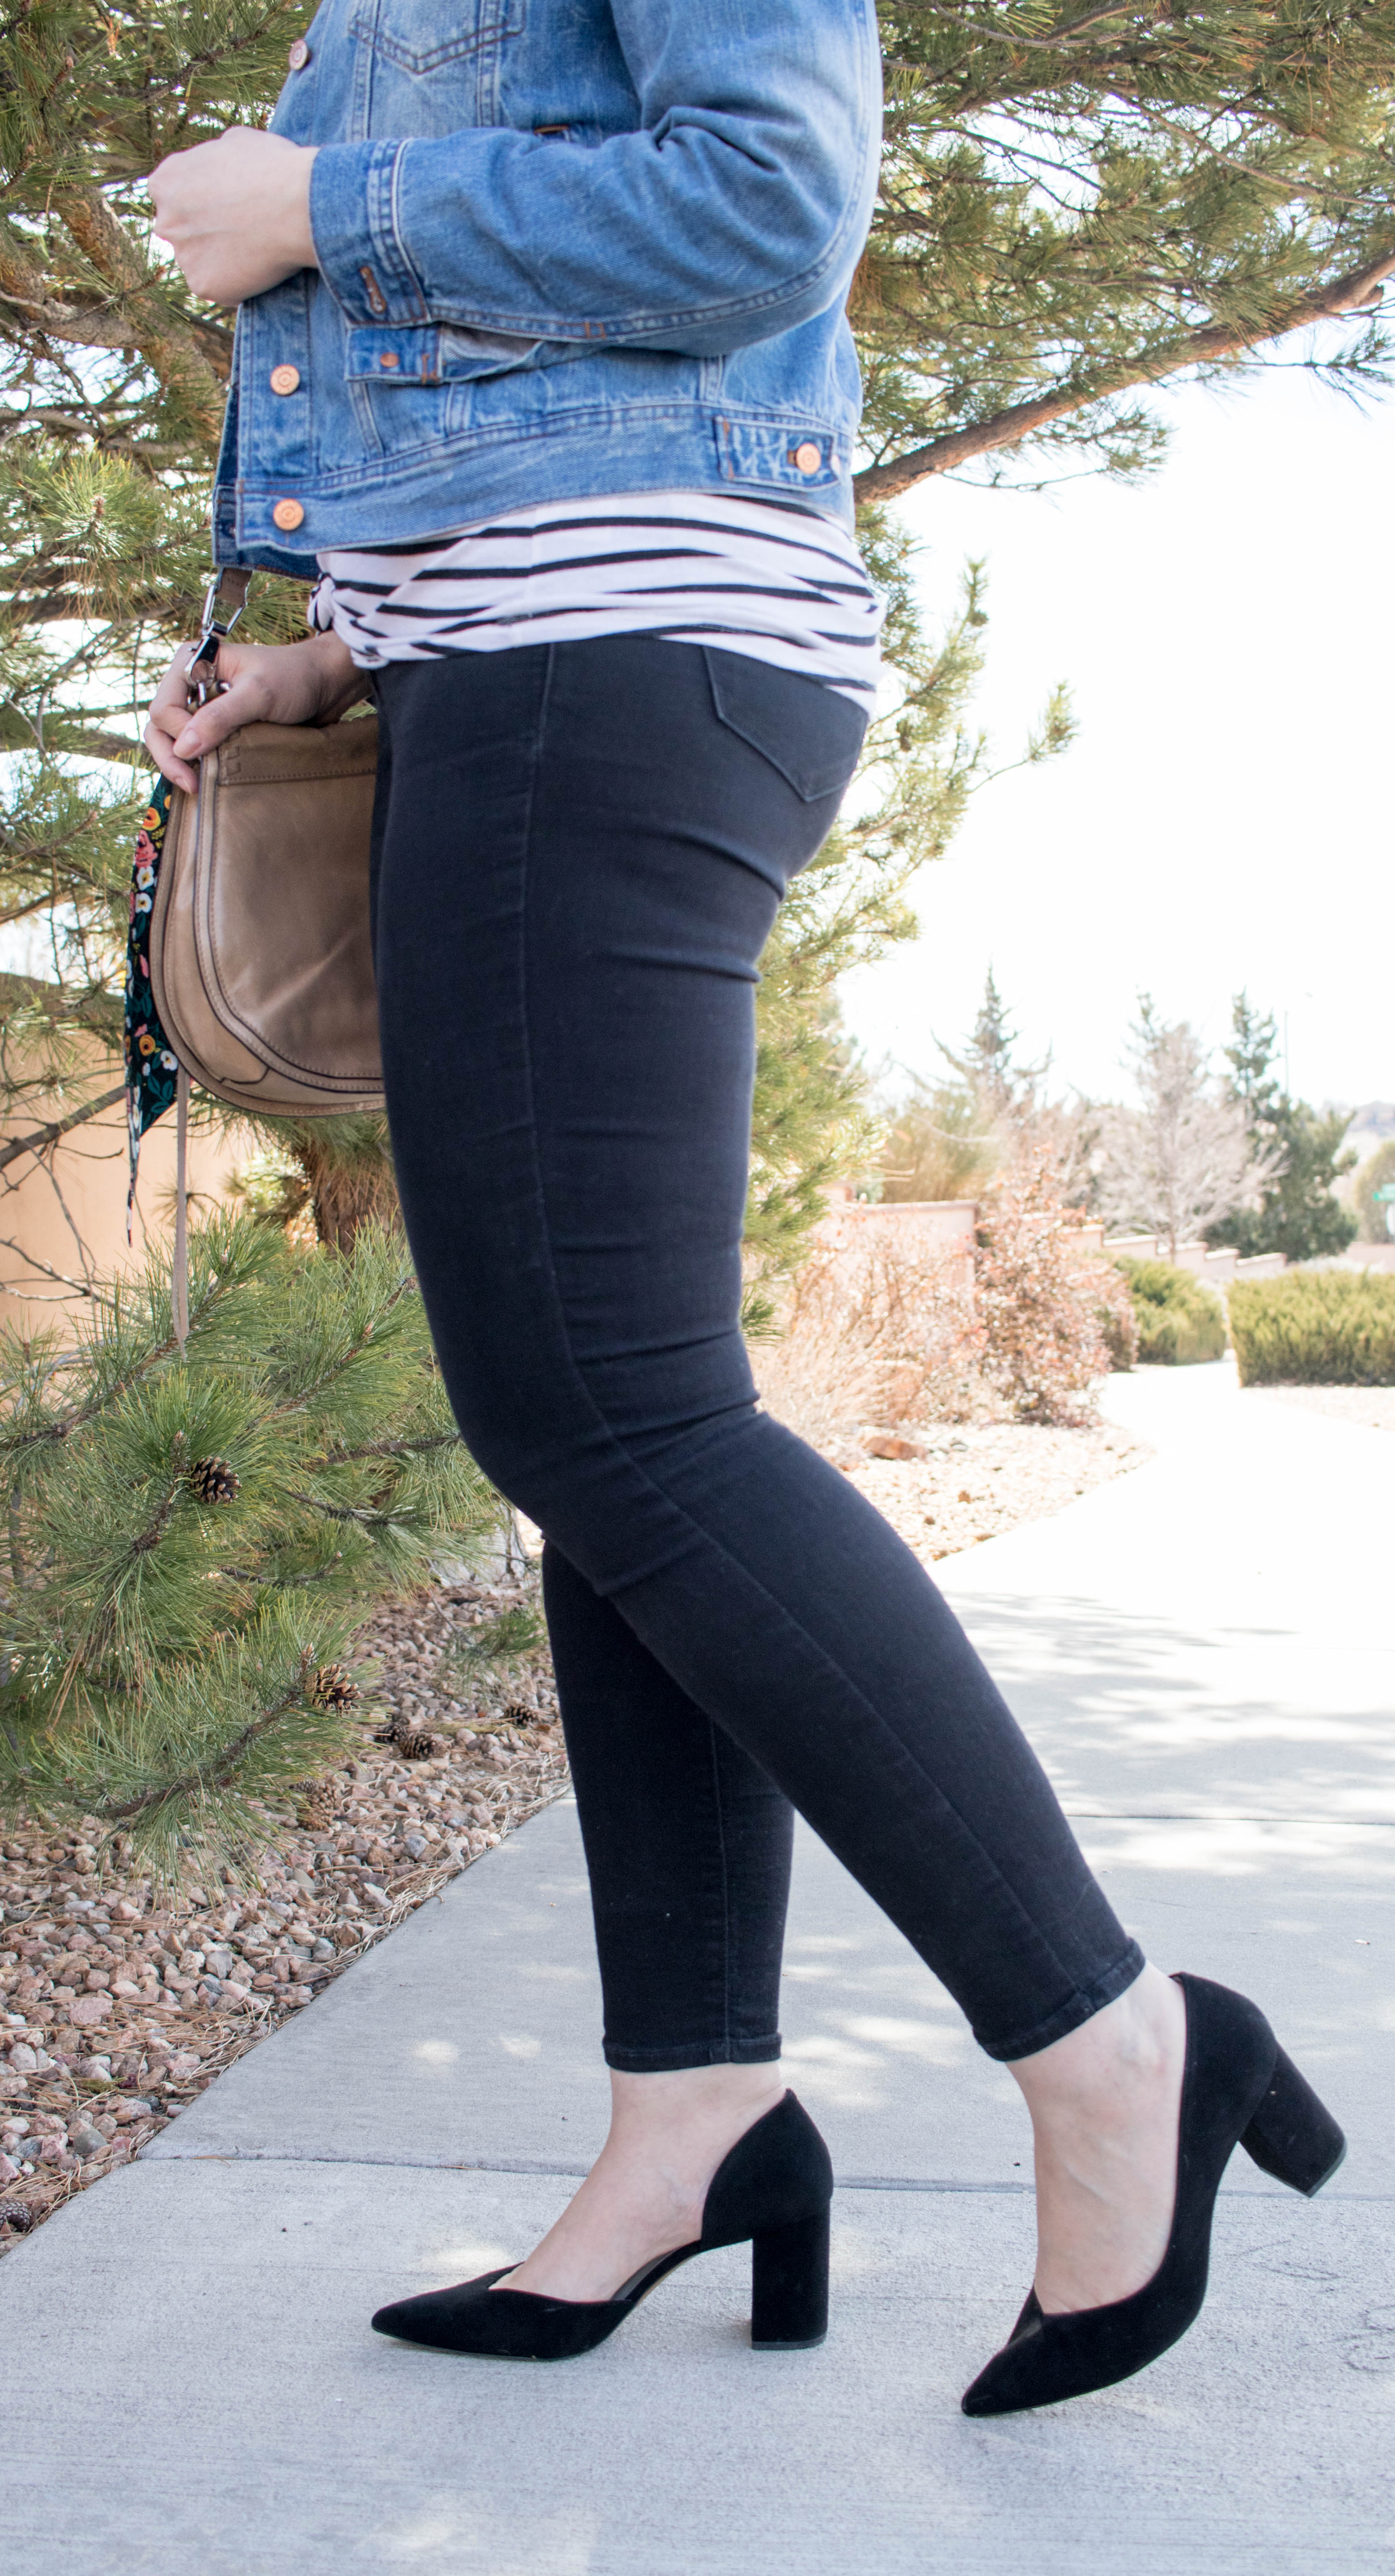 old navy rockstar jeans outfit #oldnavystyle #casualstyle #fashionblogger #blackheels